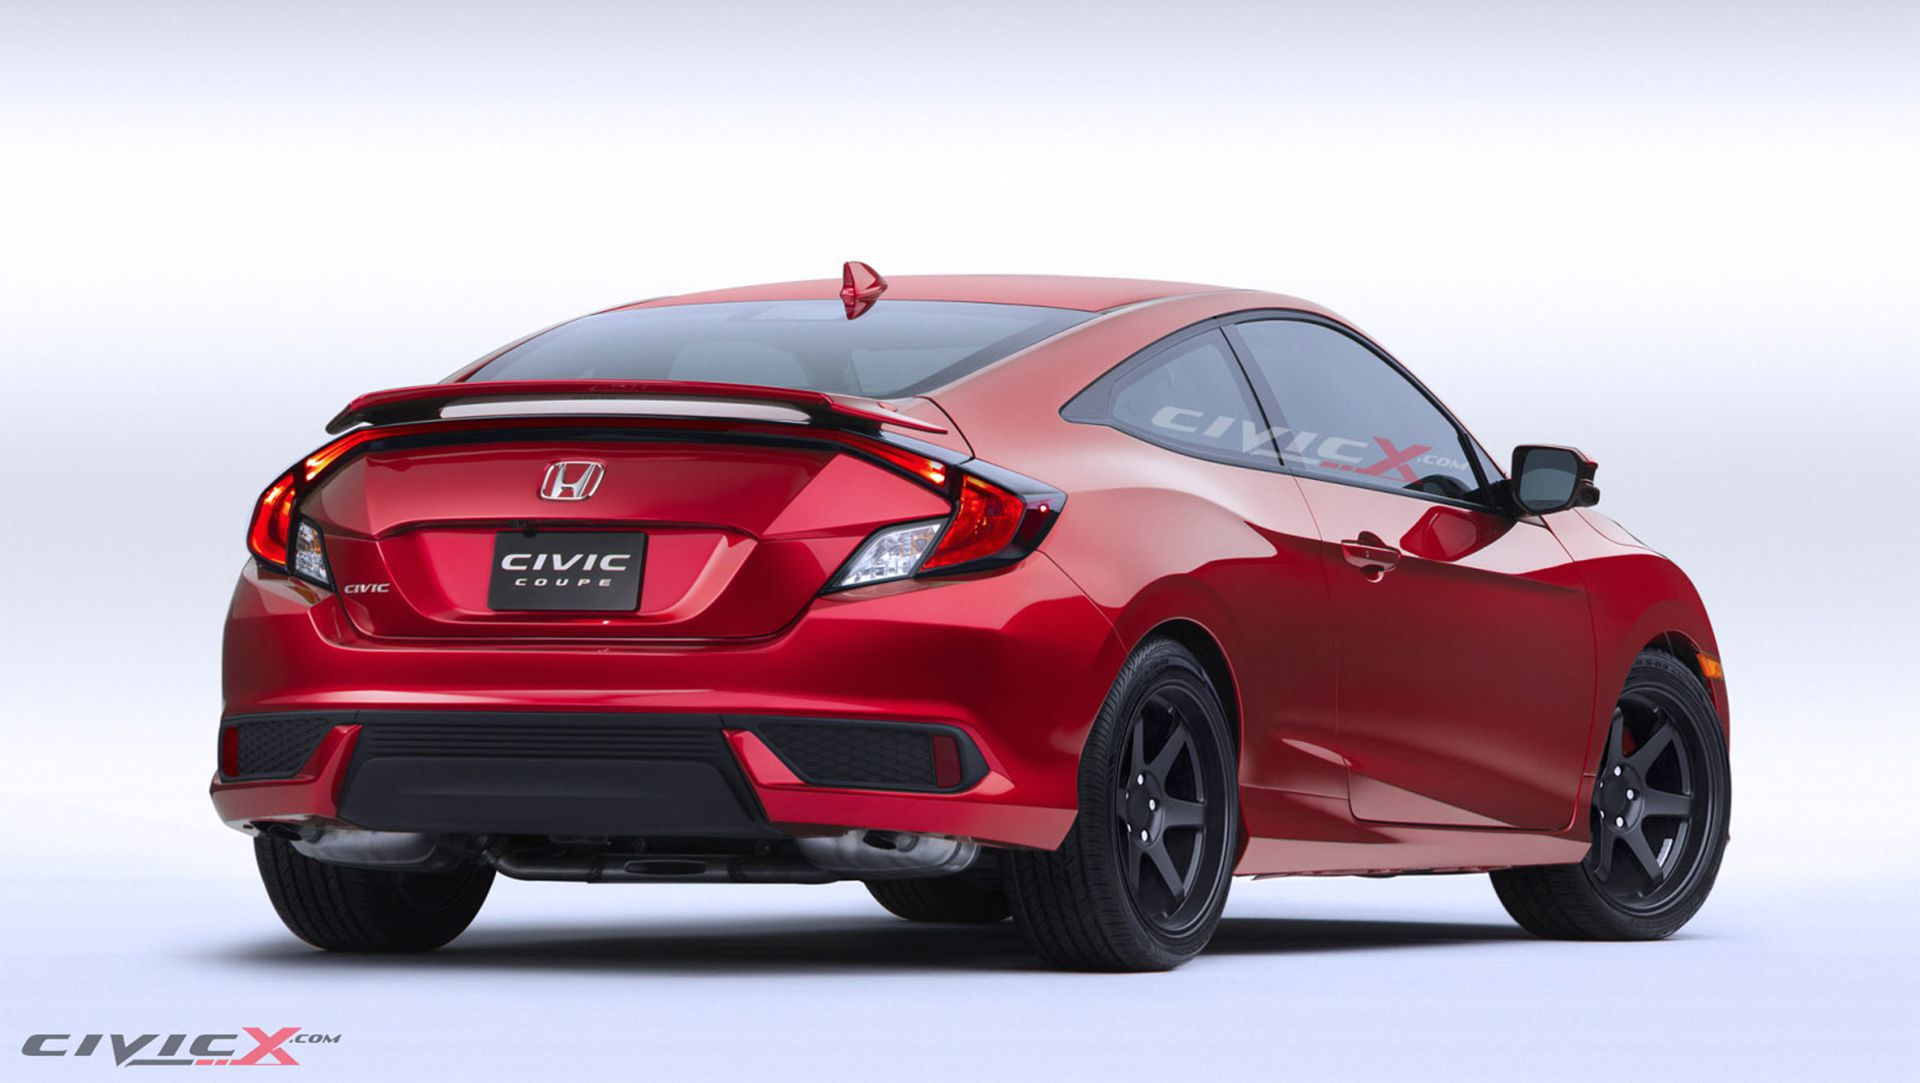 2016 Honda Civic Coupe Gets Tuned Dec 2015 | Auto Moto | Japan Bullet